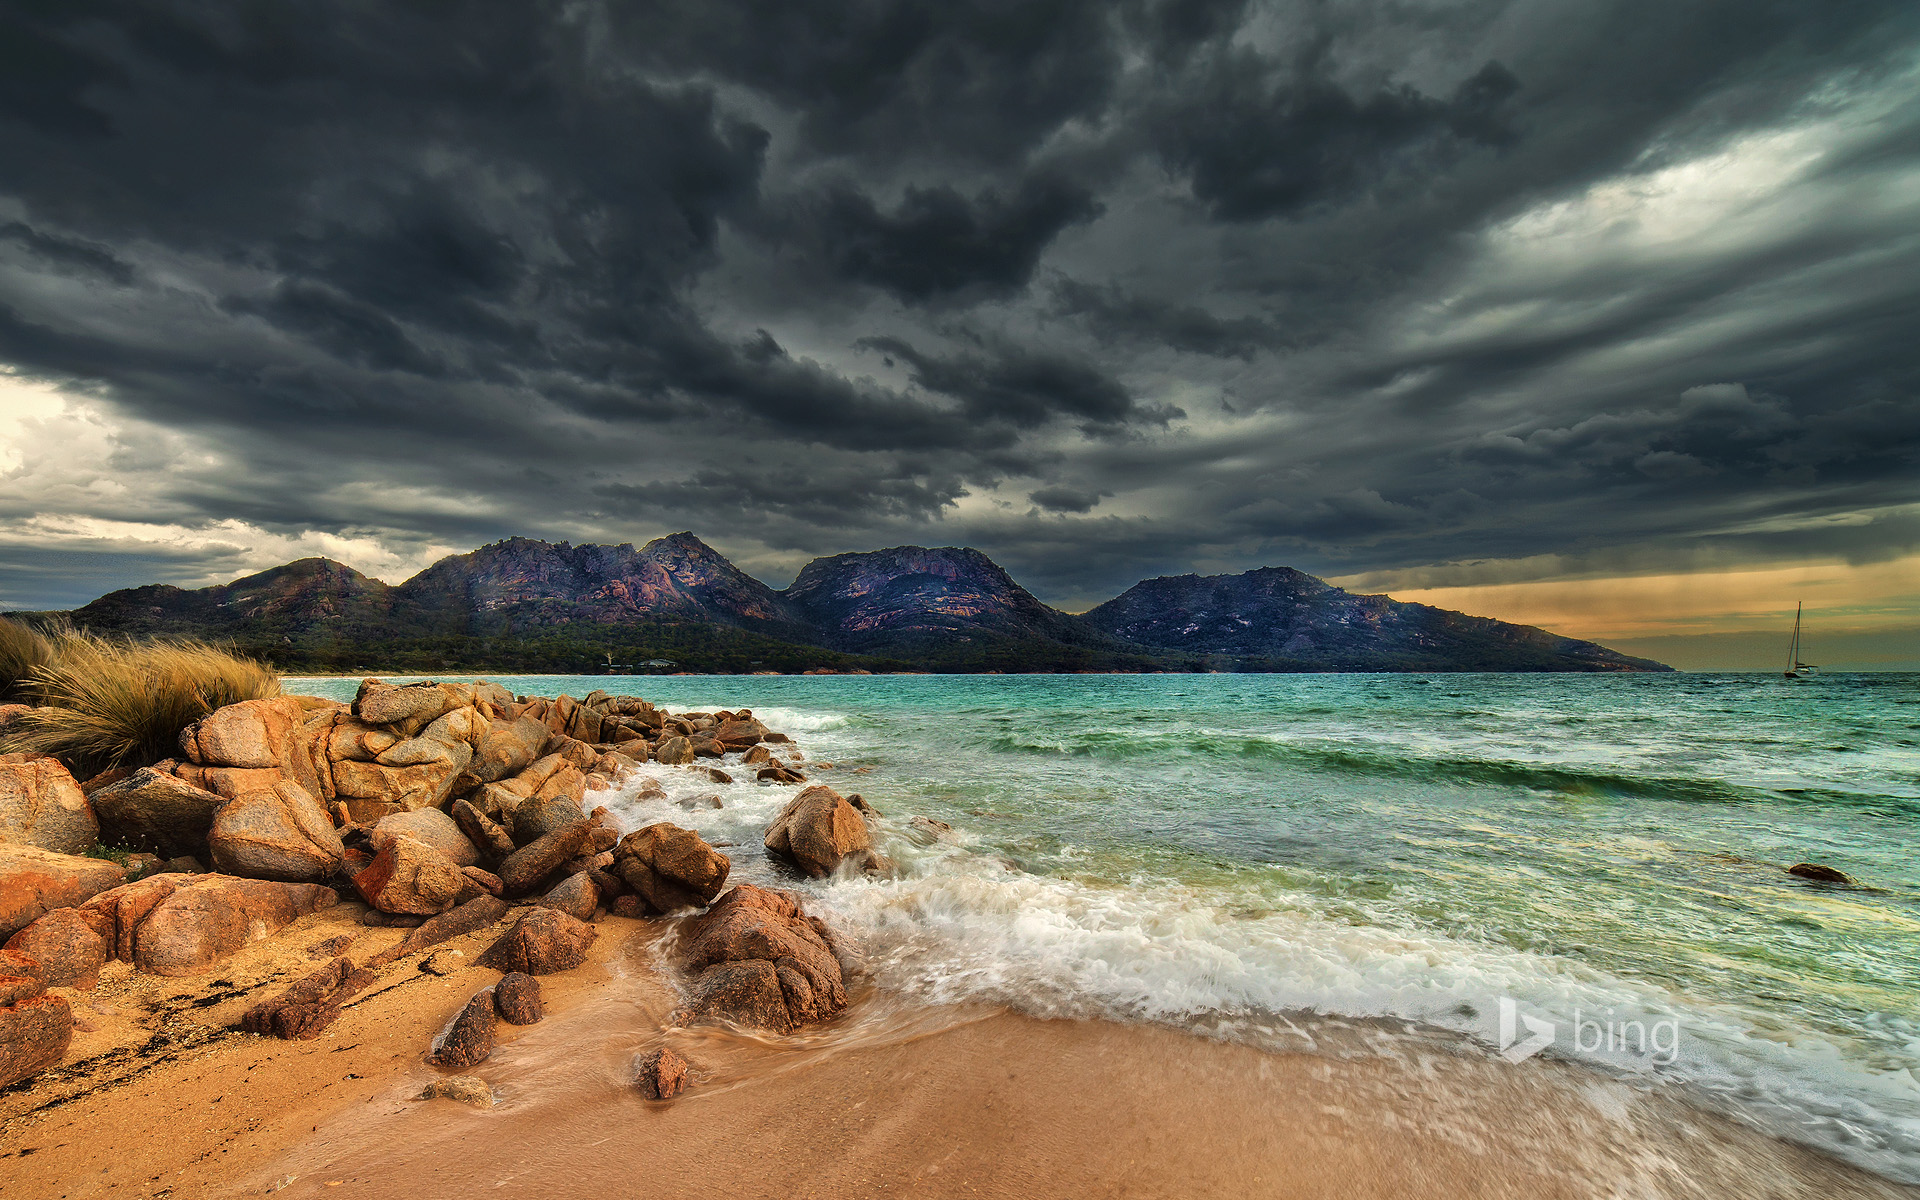 Coles Bay in Freycinet National Park, Tasmania, Australia